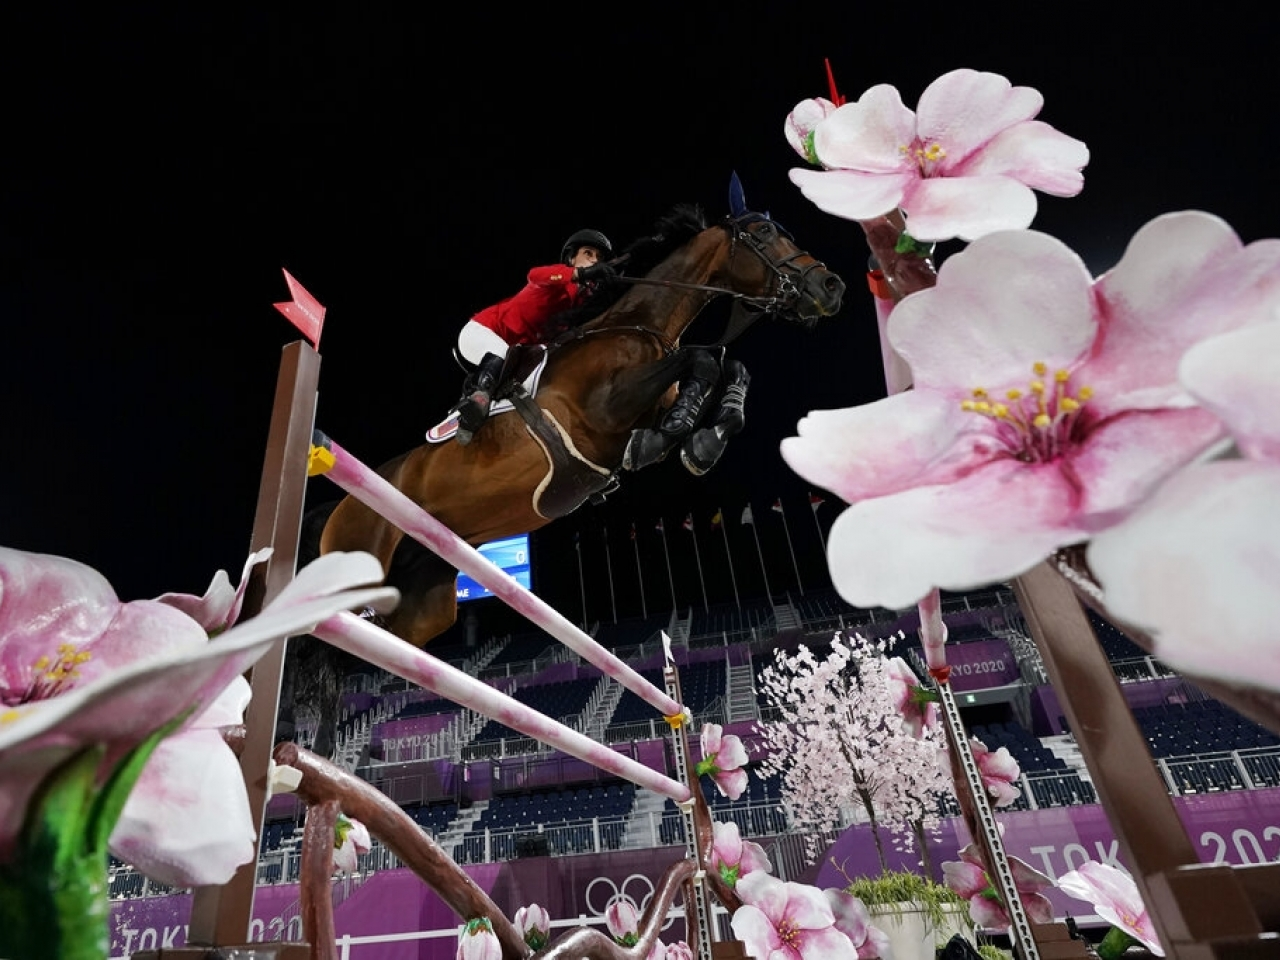 Team USA's Jessica Springsteen clears a fence in the Olympic final. Photo: AP